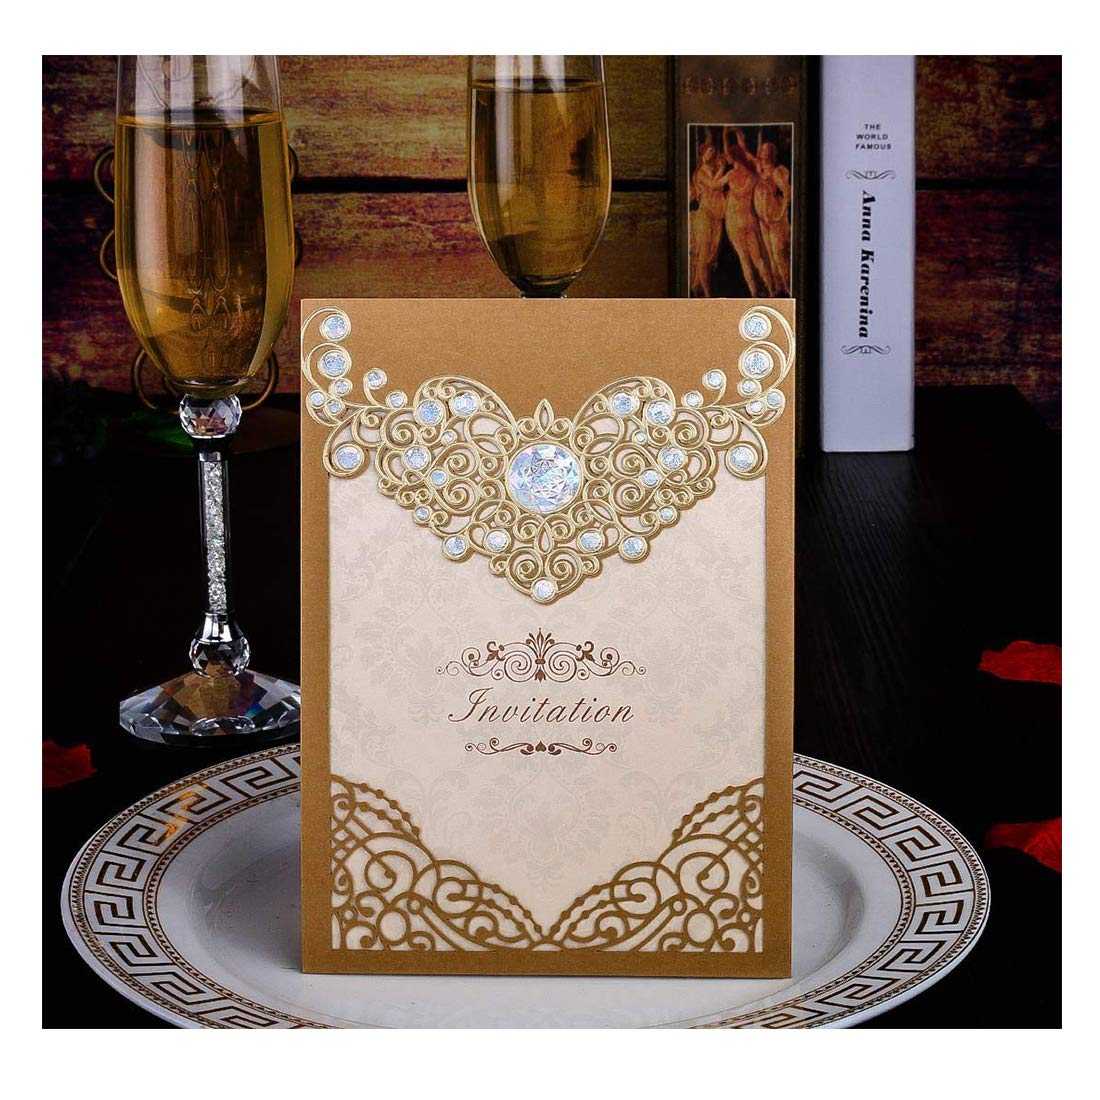 50PCS Laser Cut Invitations Cards Luxury Diamond Gloss Design Wedding Bridal Shower Invitation Baby Shower Engagement Birthday Invitation Graduation